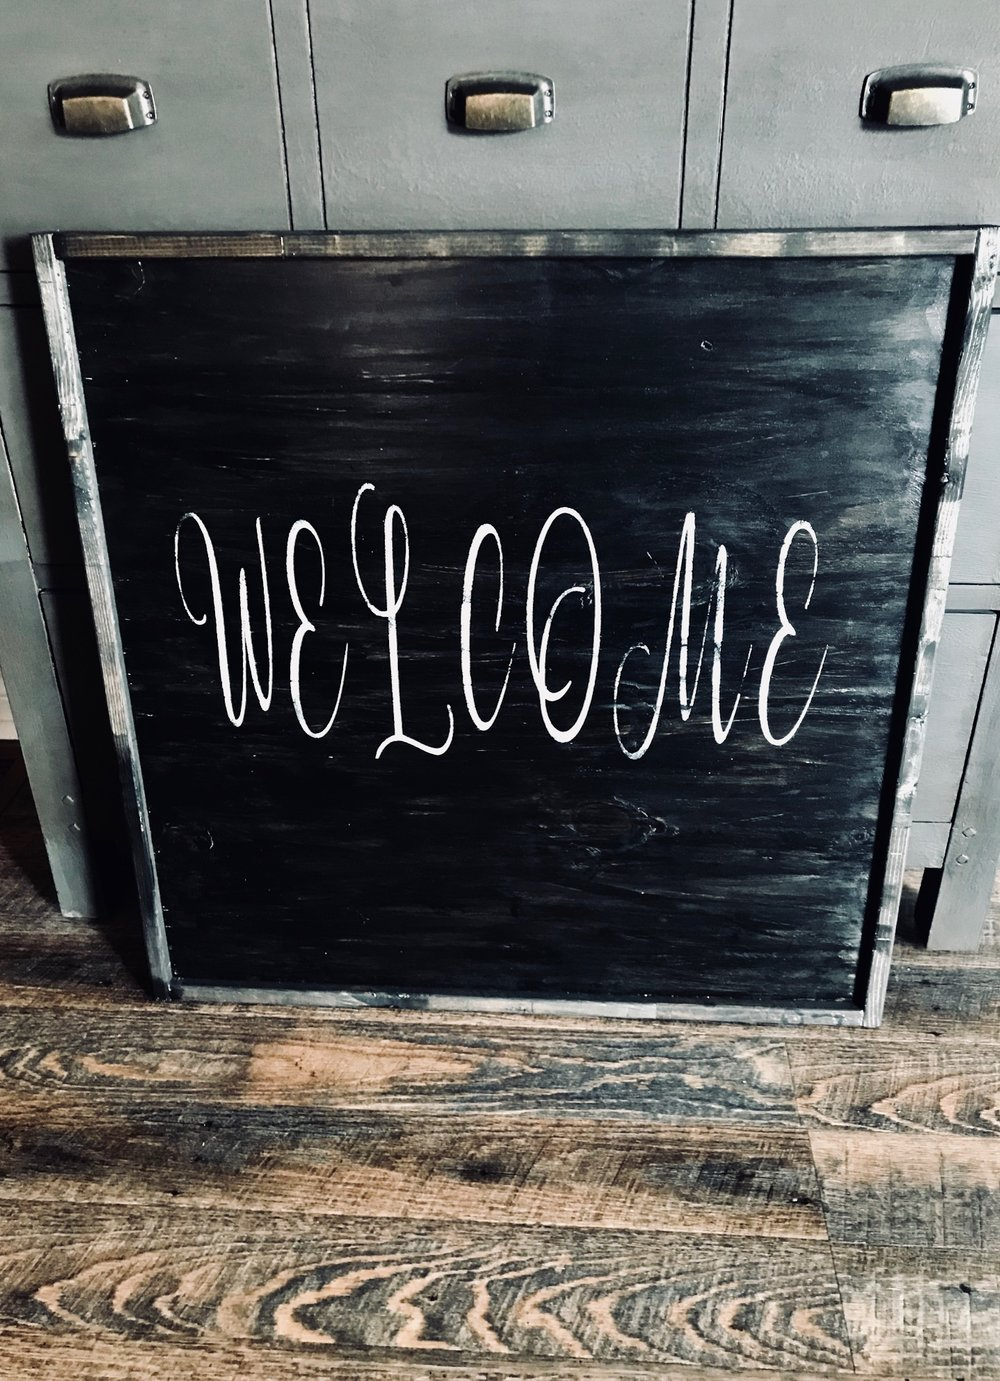 LARGE 24X24 REVERSIBLE SIGN  THESE CAN BE MADE WITH ANY SEASON/SAYING YOU WOULD LIKE ON EACH SIDE (uv & weather protected)  INTRO PRICE OF $75